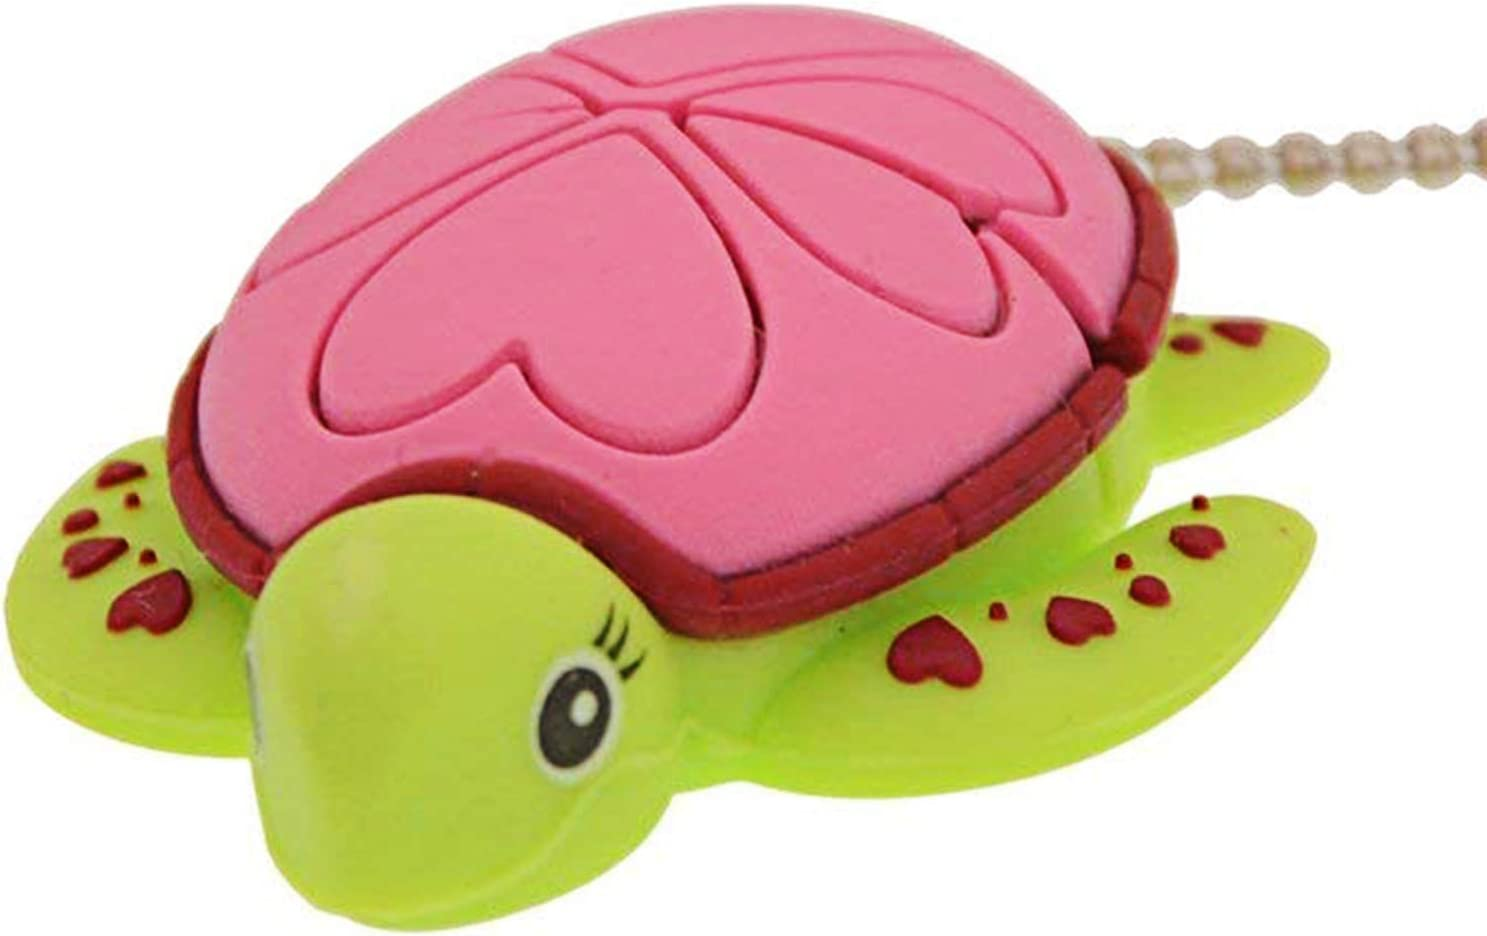 32GB Thumb Drive Baby Turtle 32G Flash Drive Cute USB 2.0 Pen Drive Kepmem Cartoon Memory Stick 32 GB Jump Drive Zip Drives Gift for Kids, Teacher, Friend